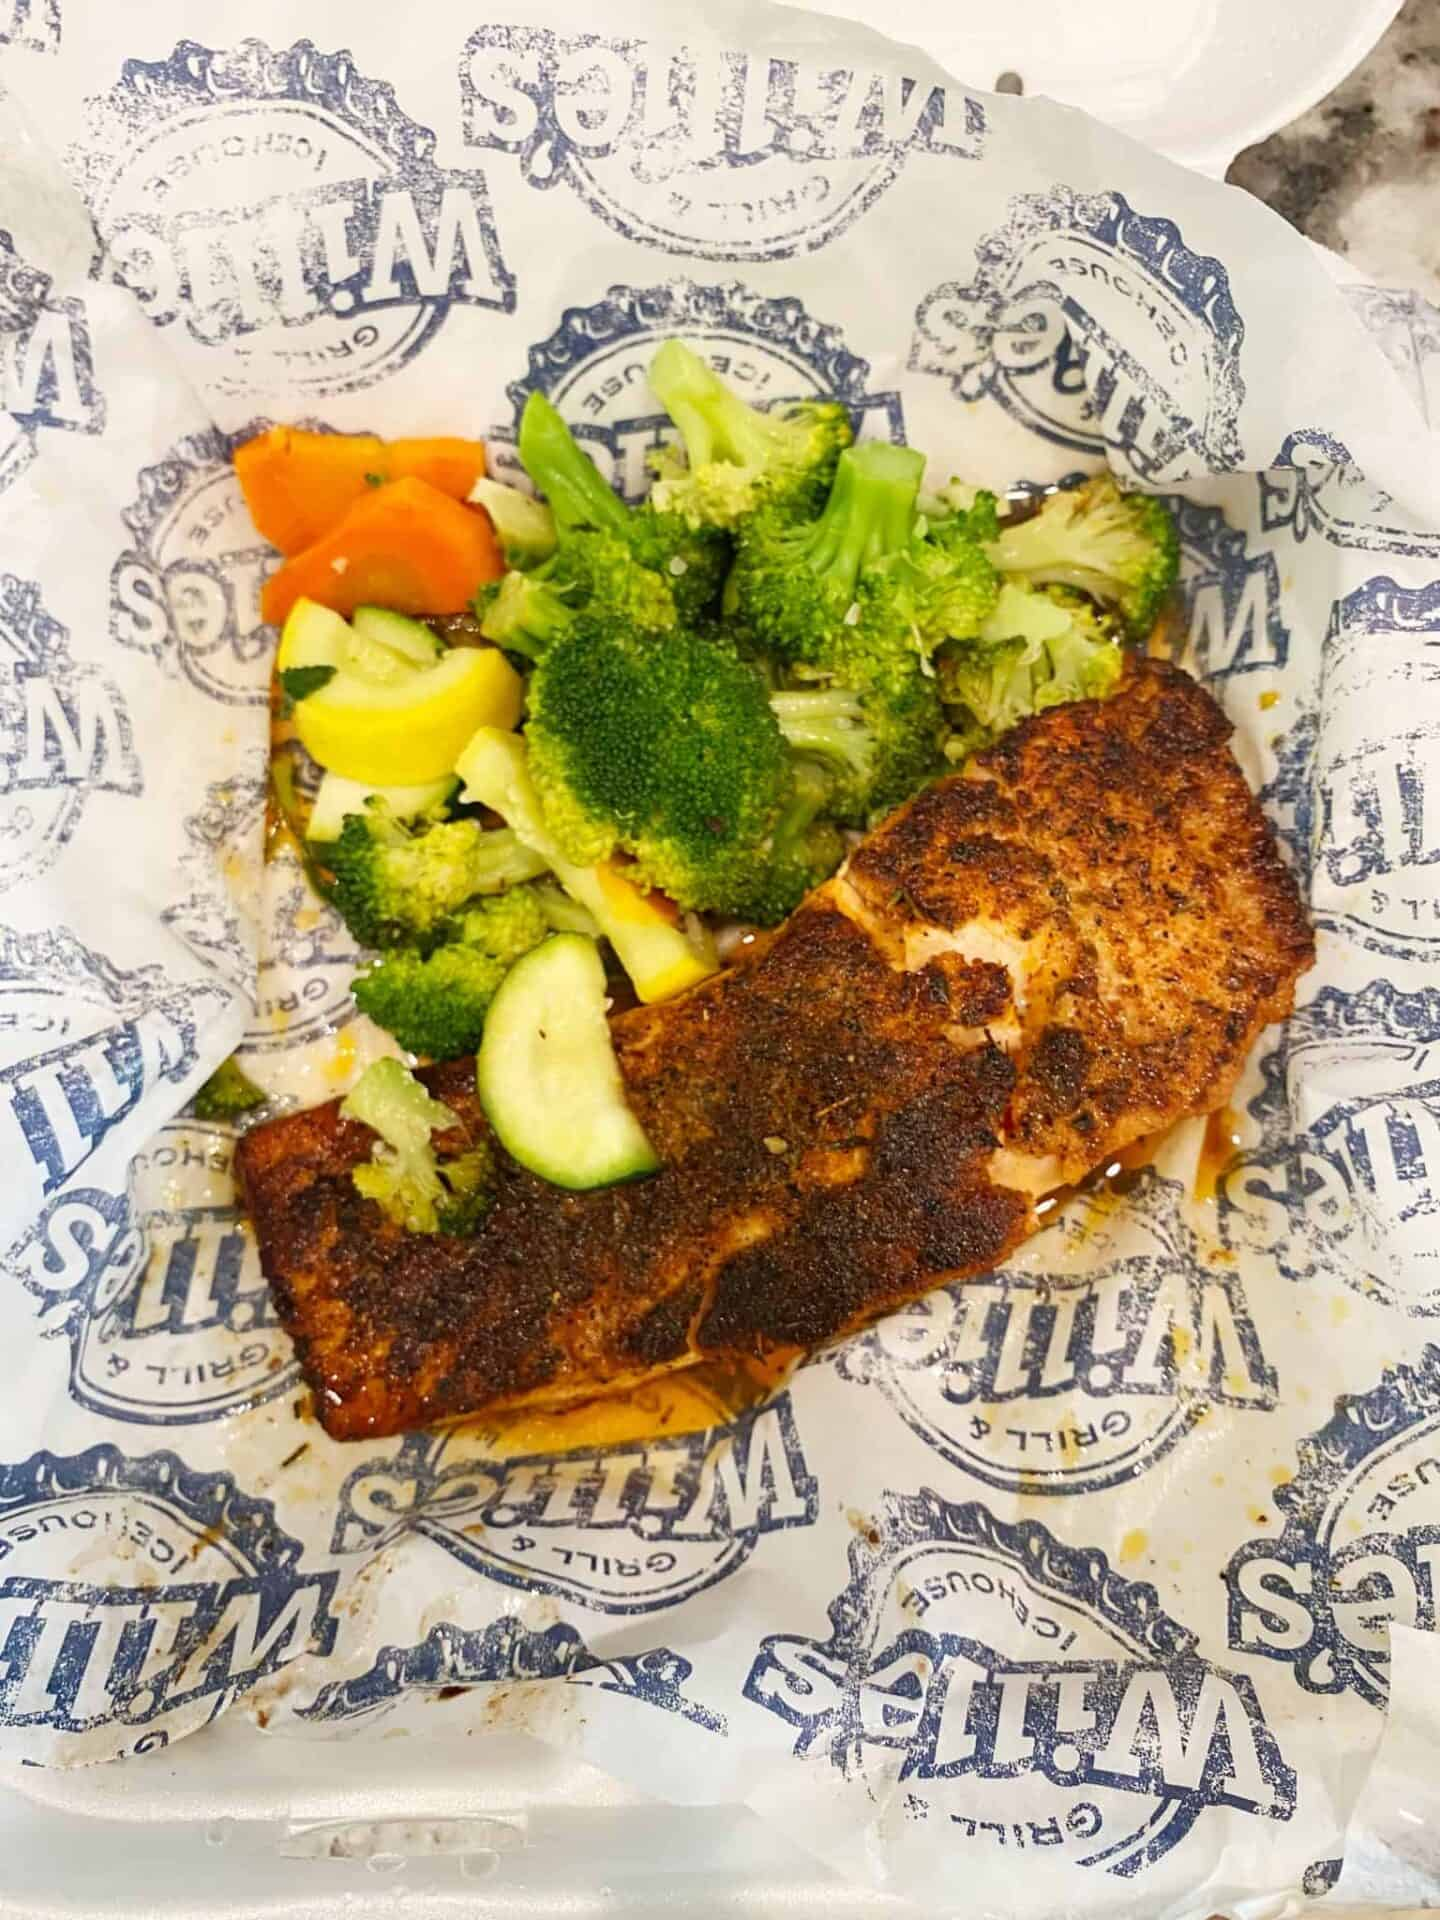 Willie's Grill and Icehouse Blackened Salmon